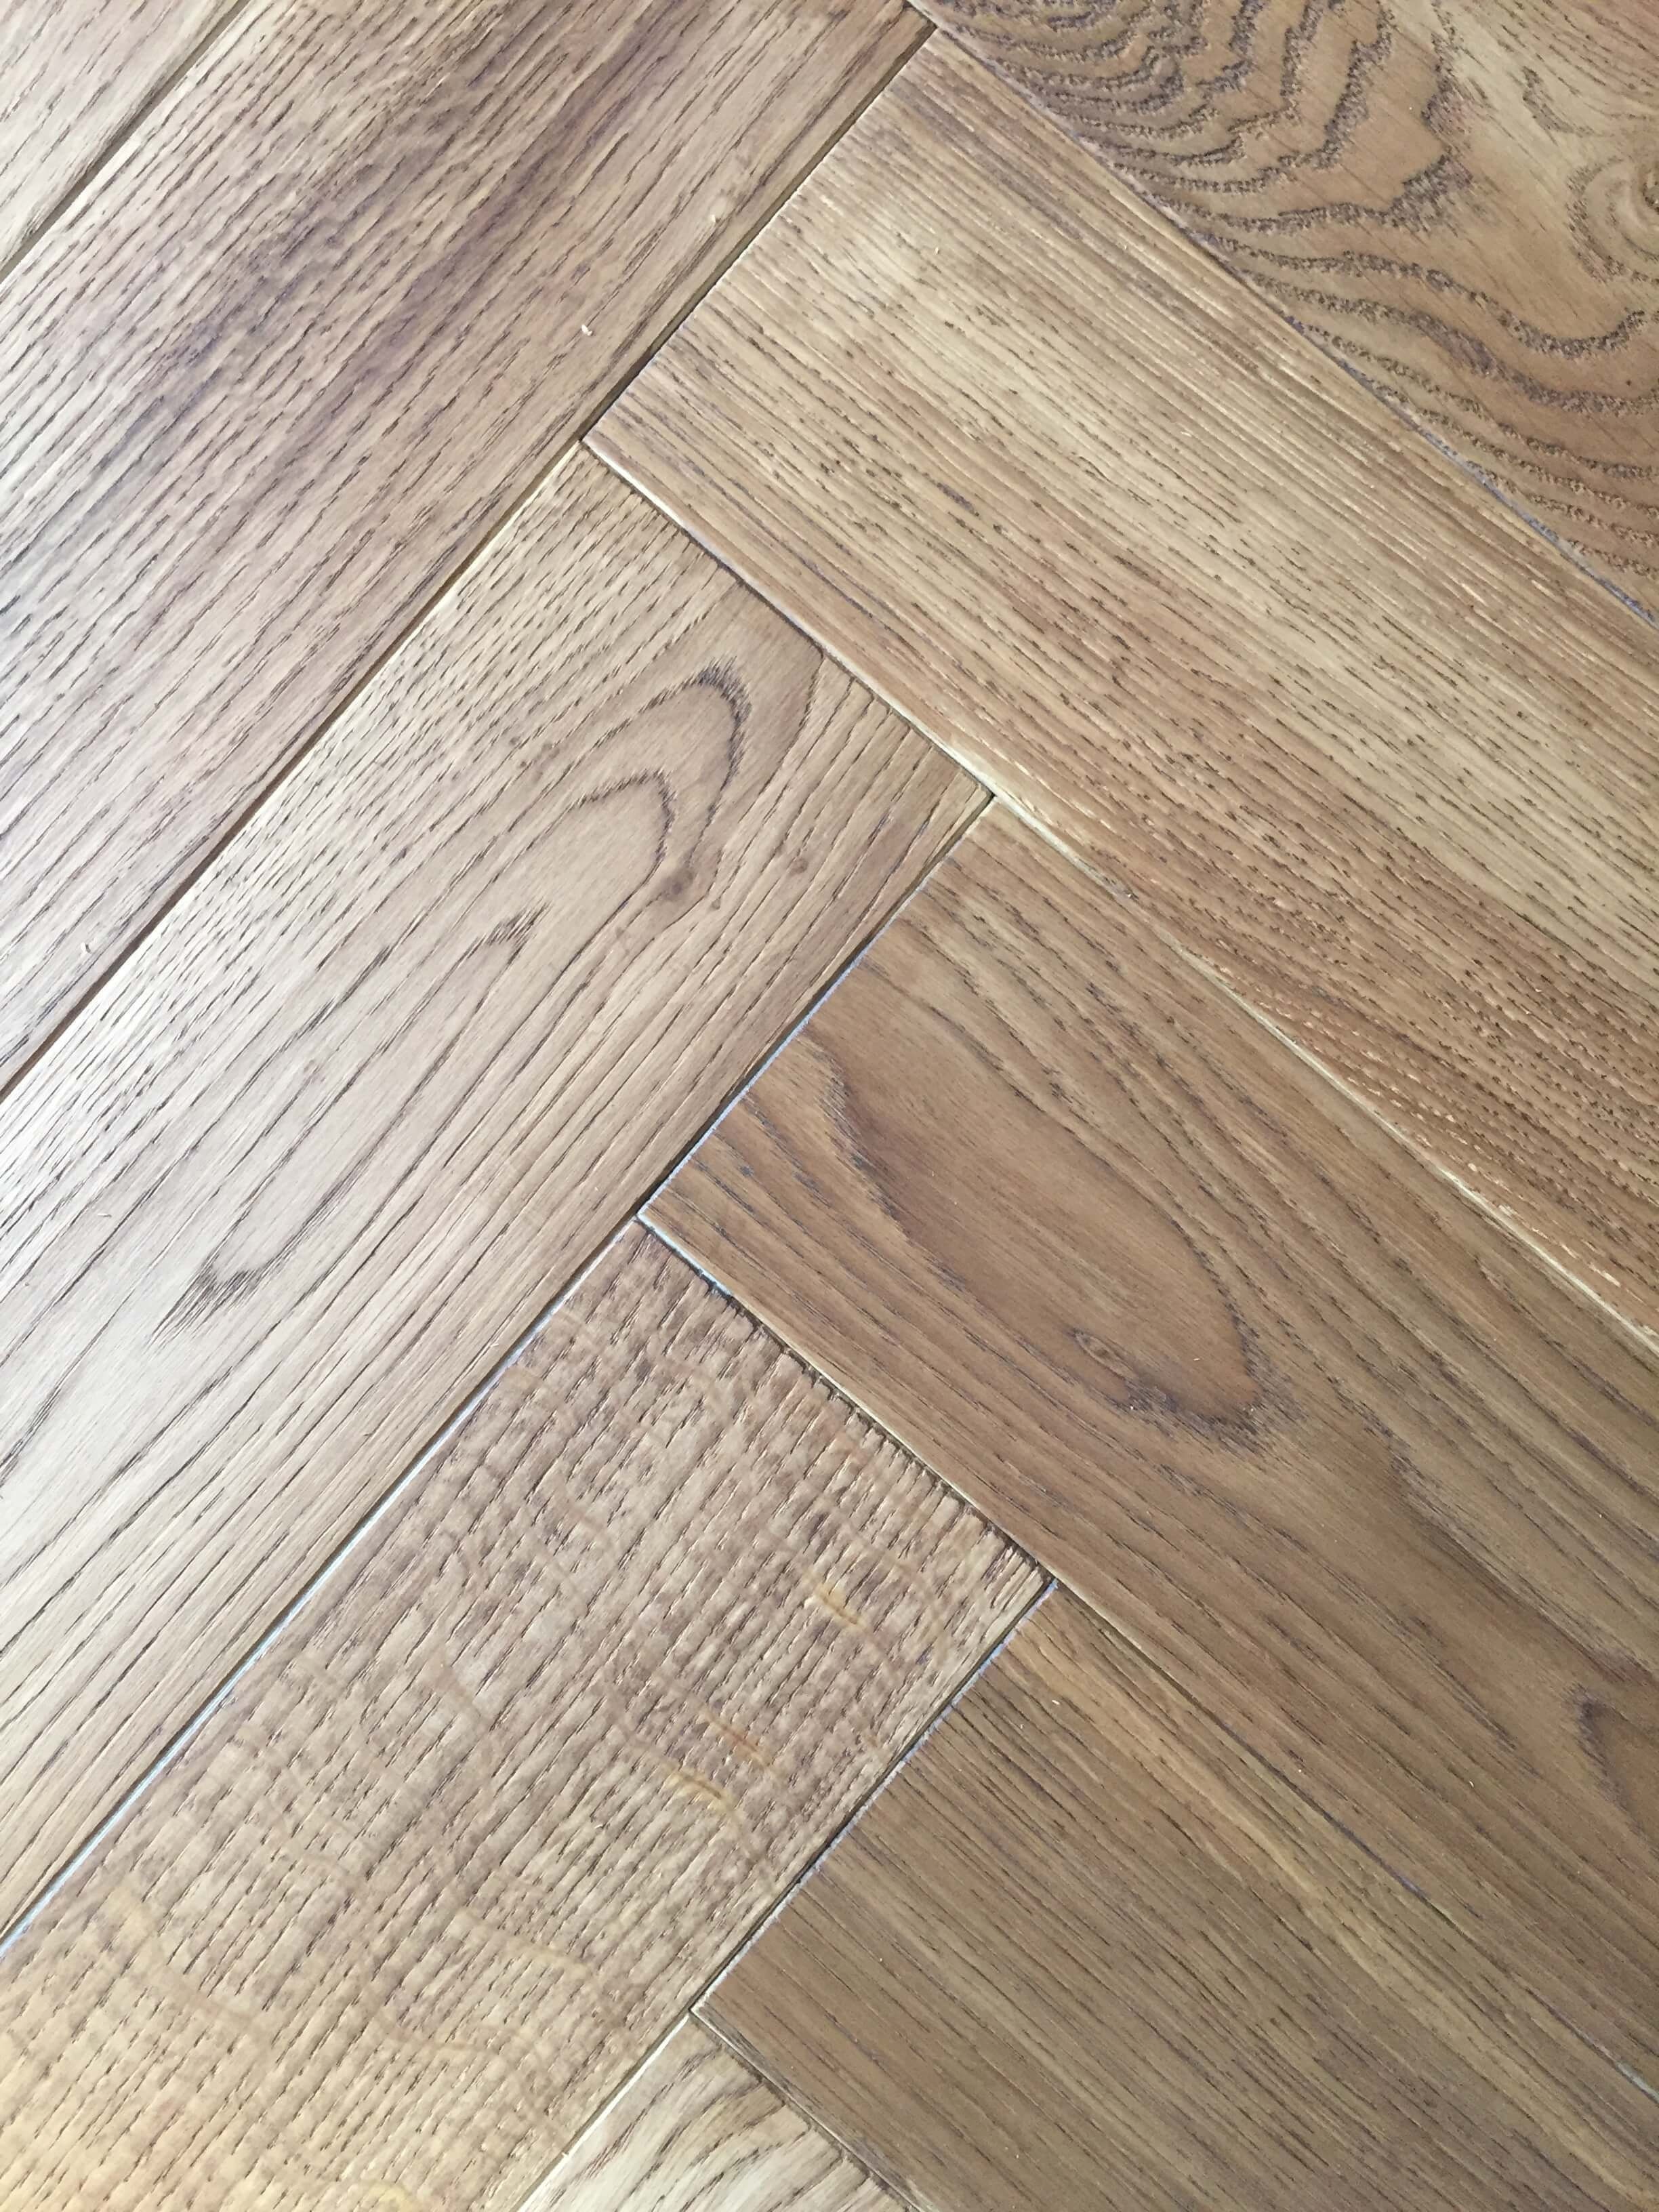 Hardwood Flooring toronto Ontario Of Handscraped Engineered Hardwood Awesome Engineered Wood Flooring for Handscraped Engineered Hardwood Awesome Engineered Wood Flooring Brown Maple Hand Scraped Engineered Images